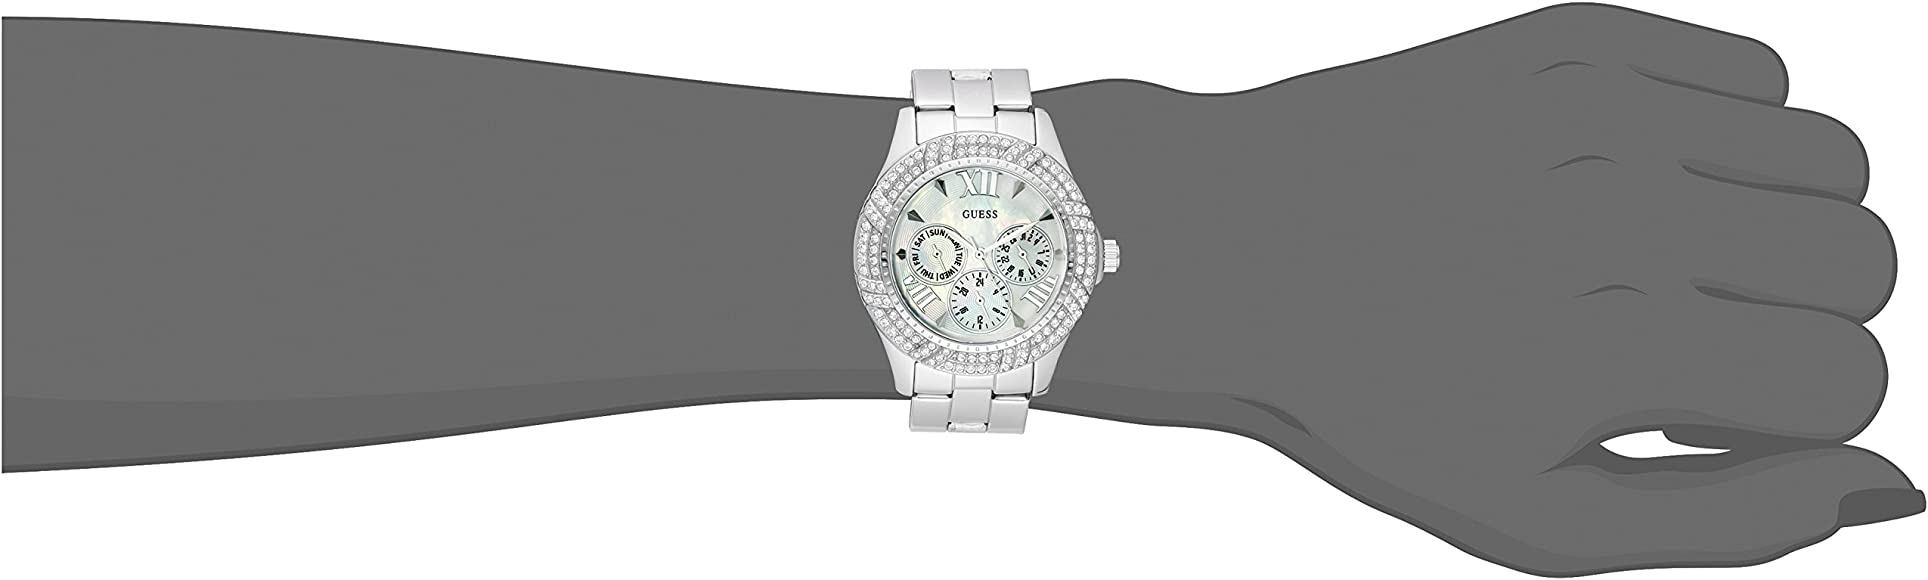 GUESS Women's U0632L1 Sporty Silver Tone Watch with MOP Dial